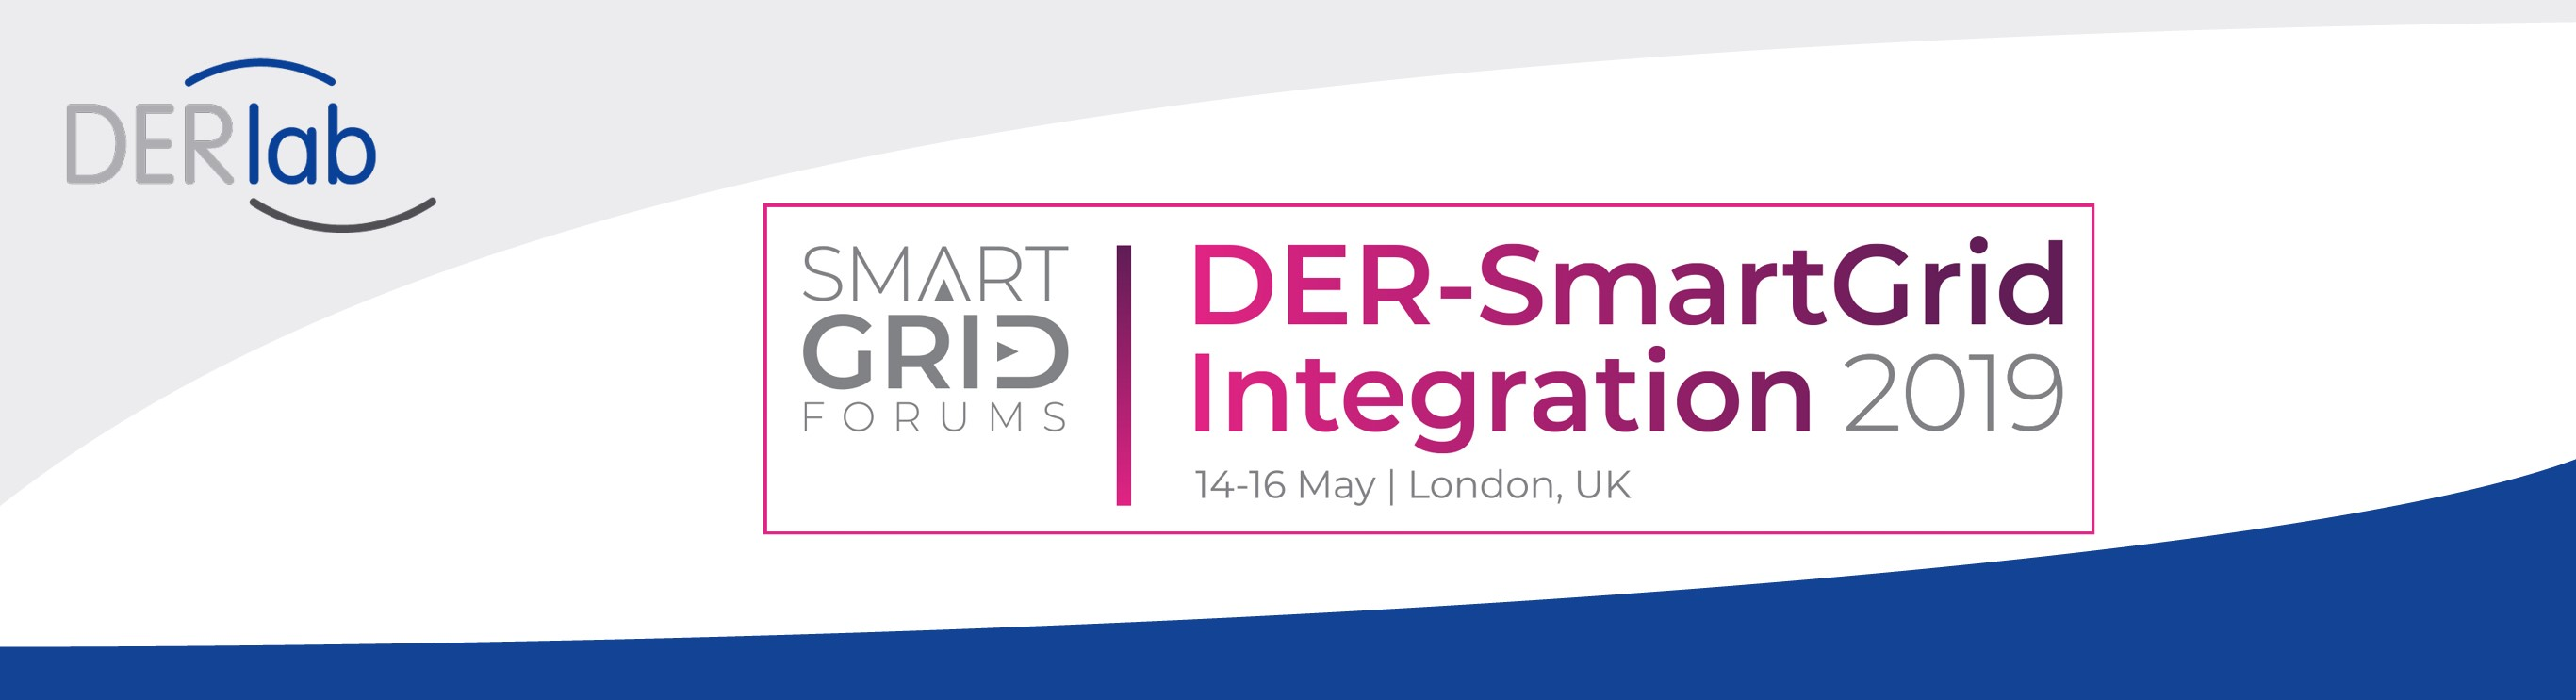 DERlab partners with DER-SmartGrid Integration 2019